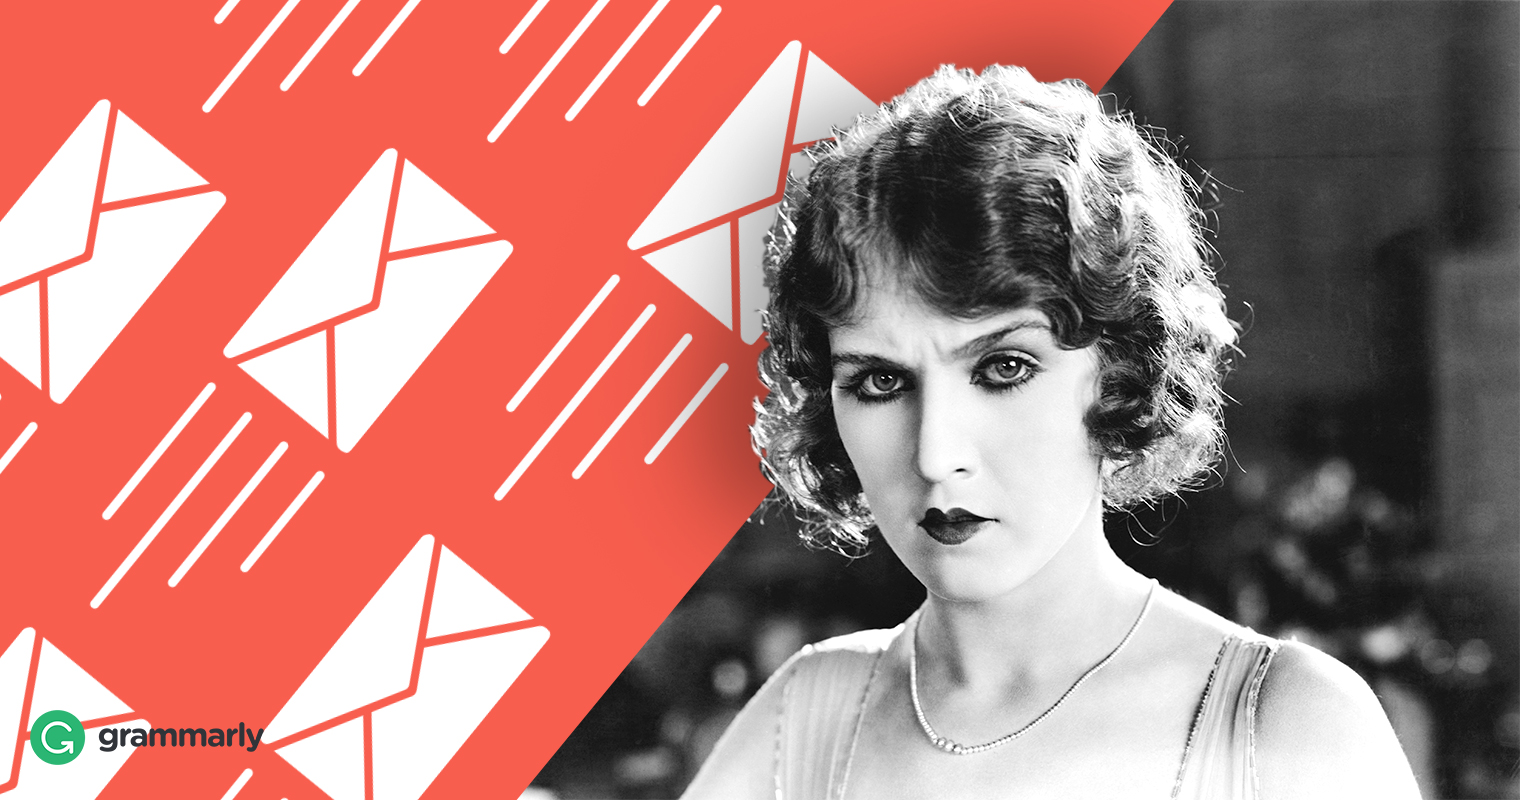 How to Address Your Business Email or Letter to a Woman (Without Offending Her) image